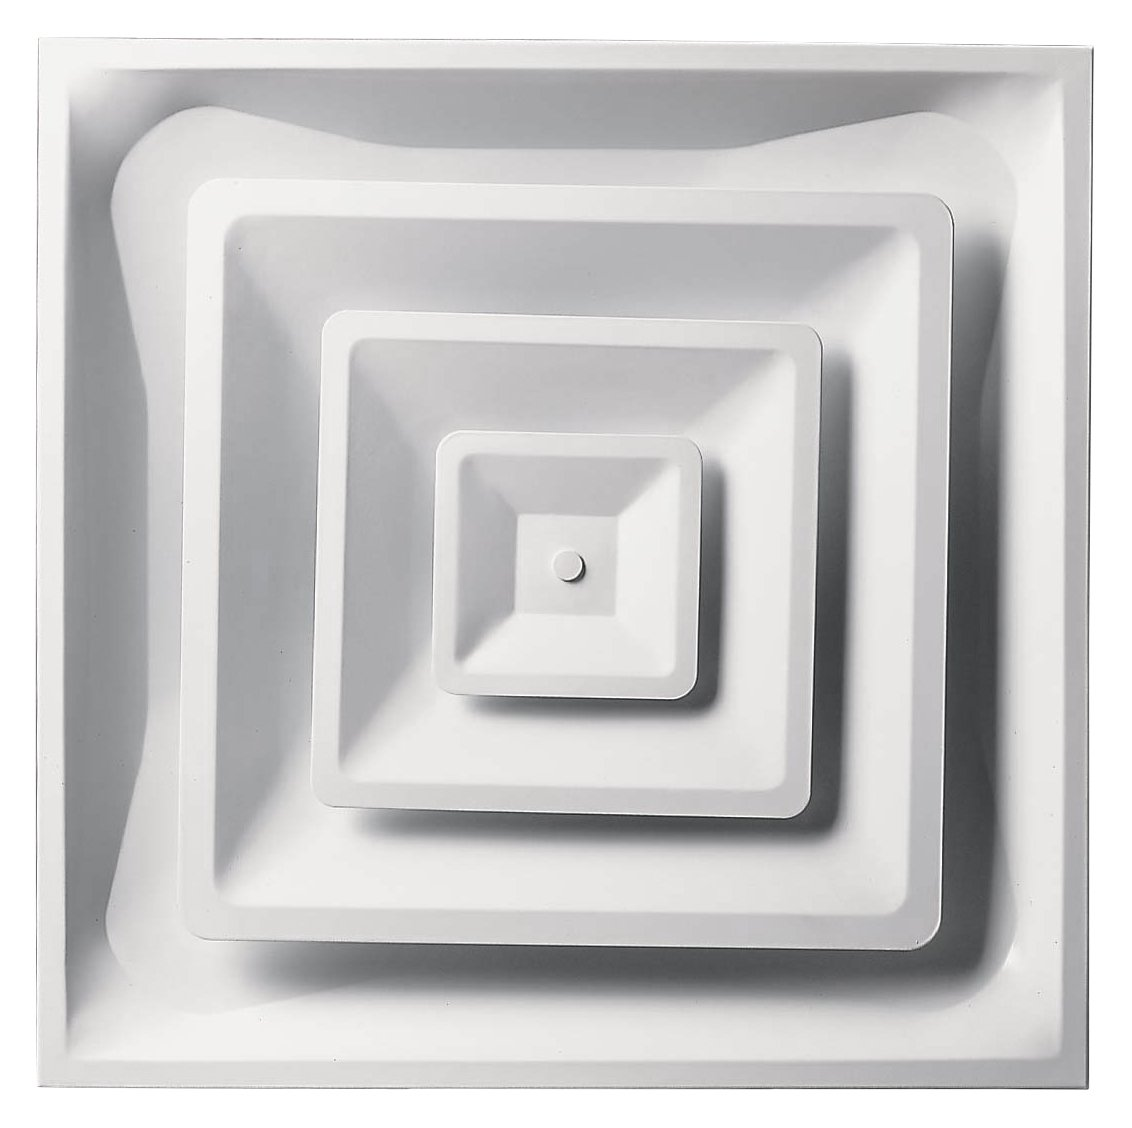 Accord Ventilation ABCD2X2 Ceiling Diffuser, 24'' x 24'', White